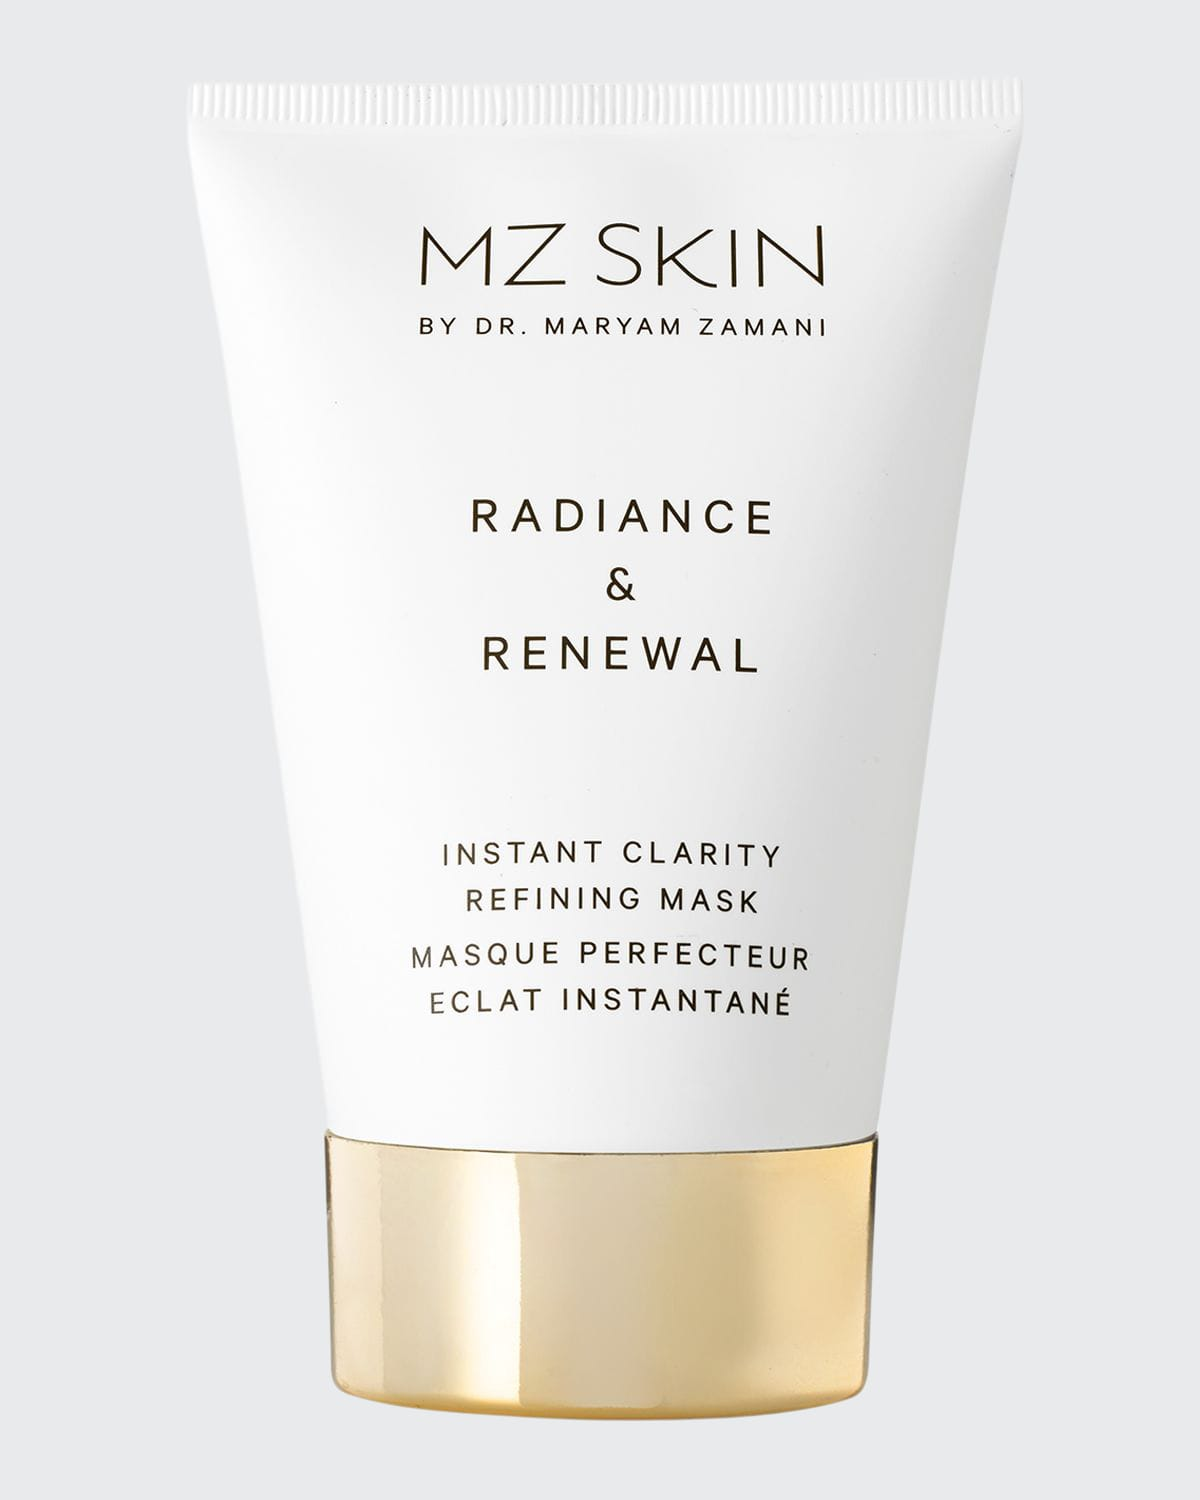 Radiance and Renewal Instant Clarity Refining Mask